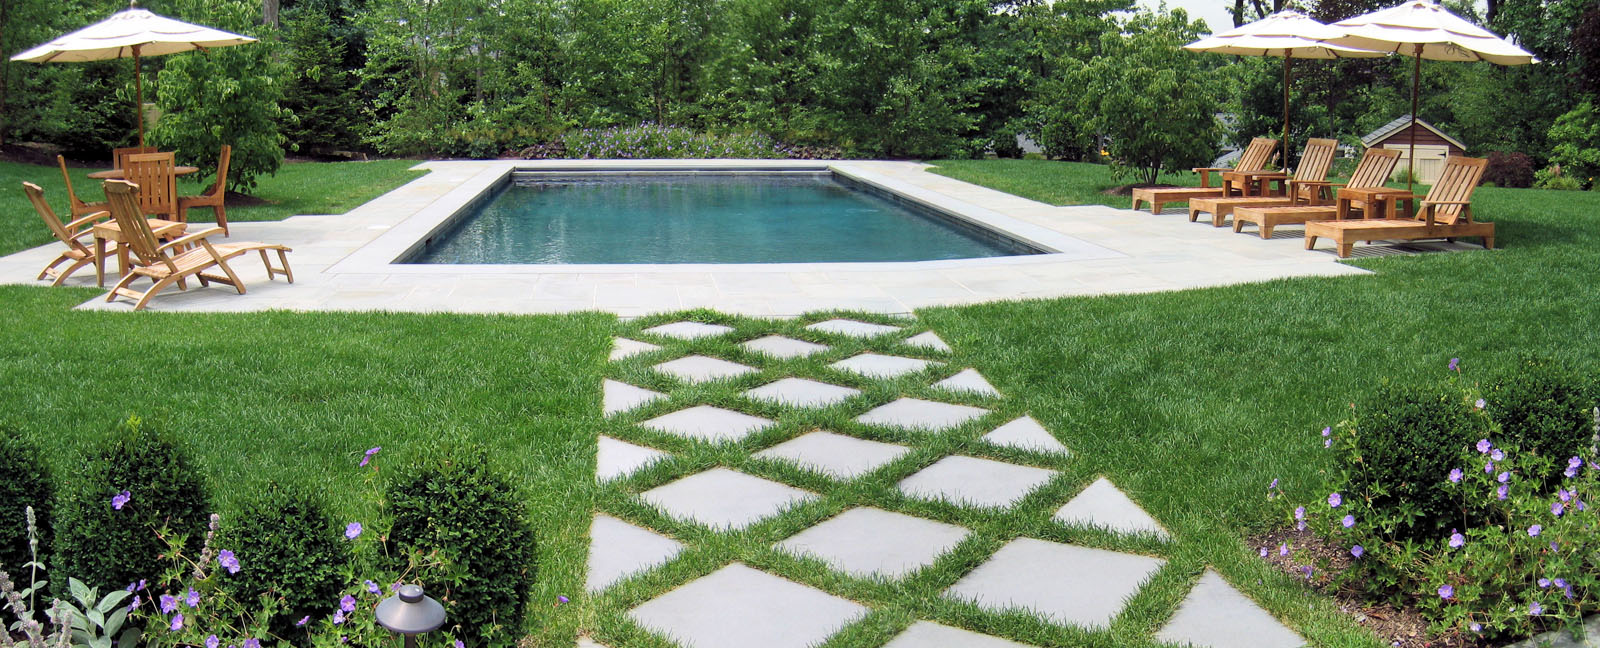 Gray Tennessee Sandstone Stepping Stones Aligned in Traditional Design